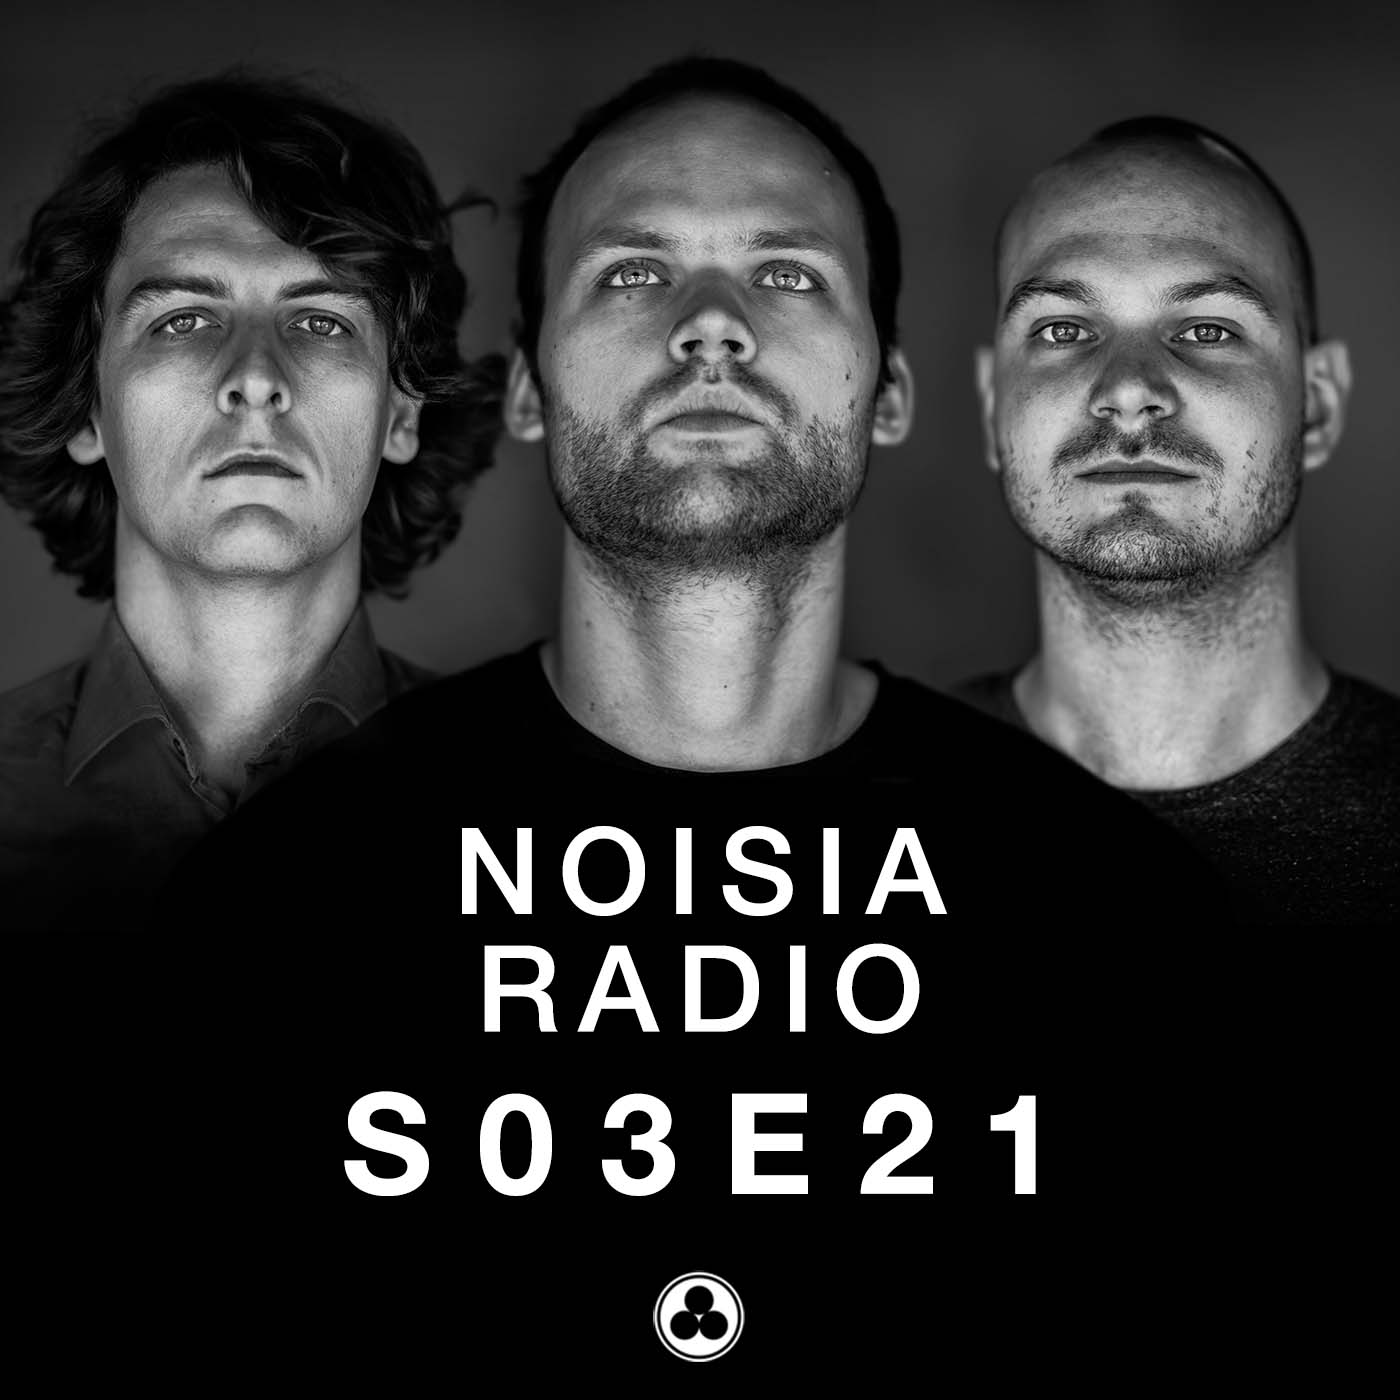 Noisia Radio S03E21